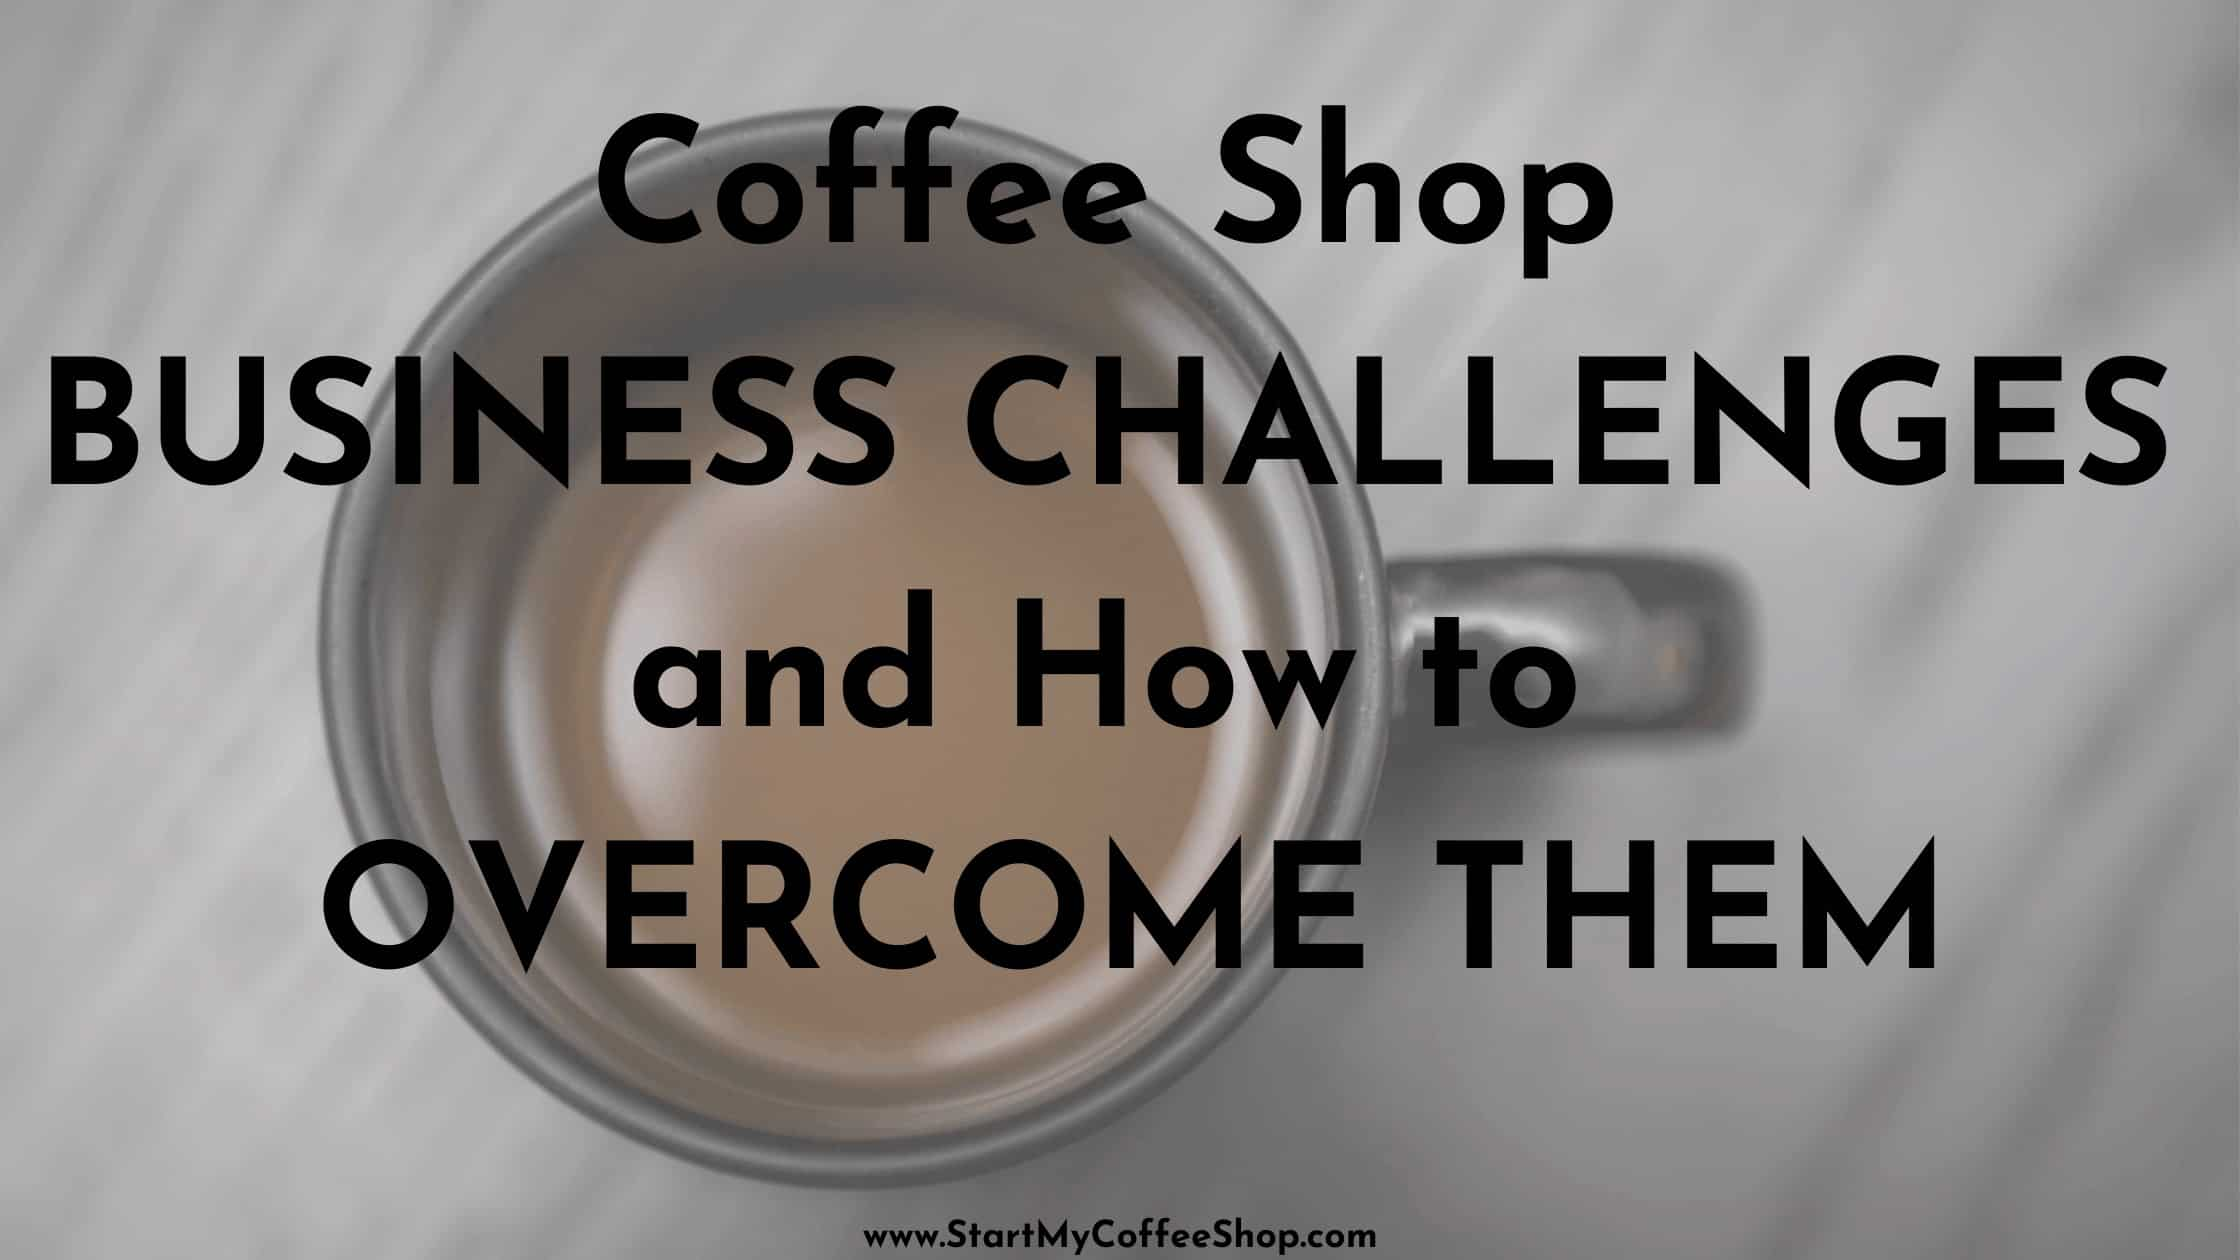 Coffee Shop Business Challenges and How to Overcome Them.